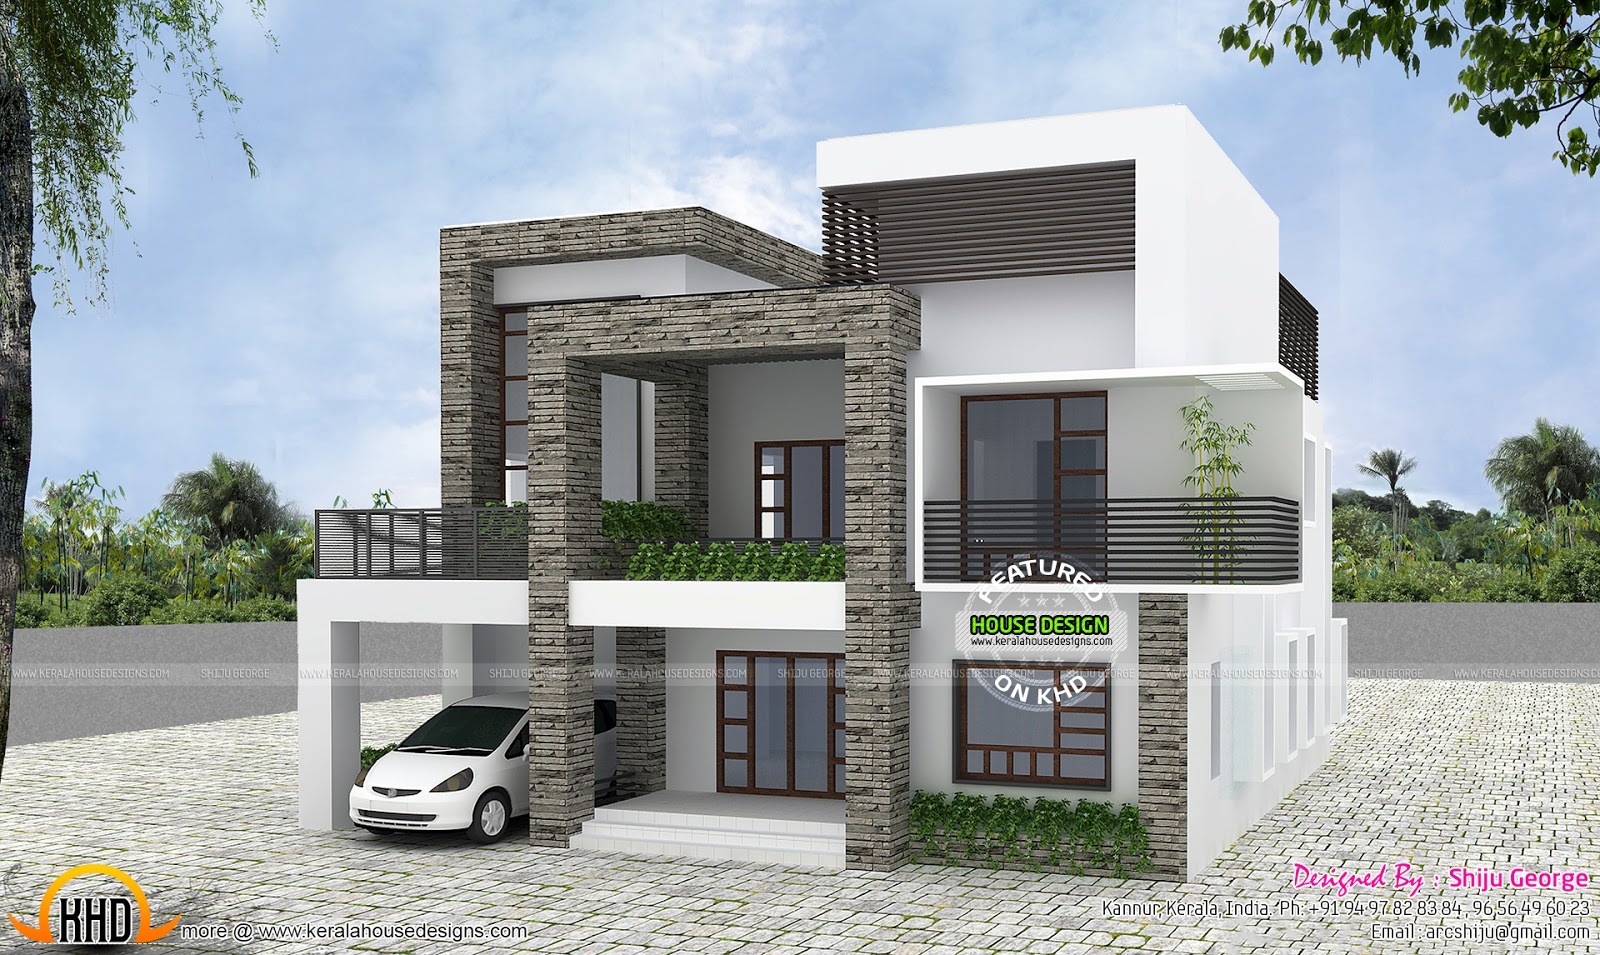 One house in 3 different styles with plan keralahousedesigns for Different styles of houses